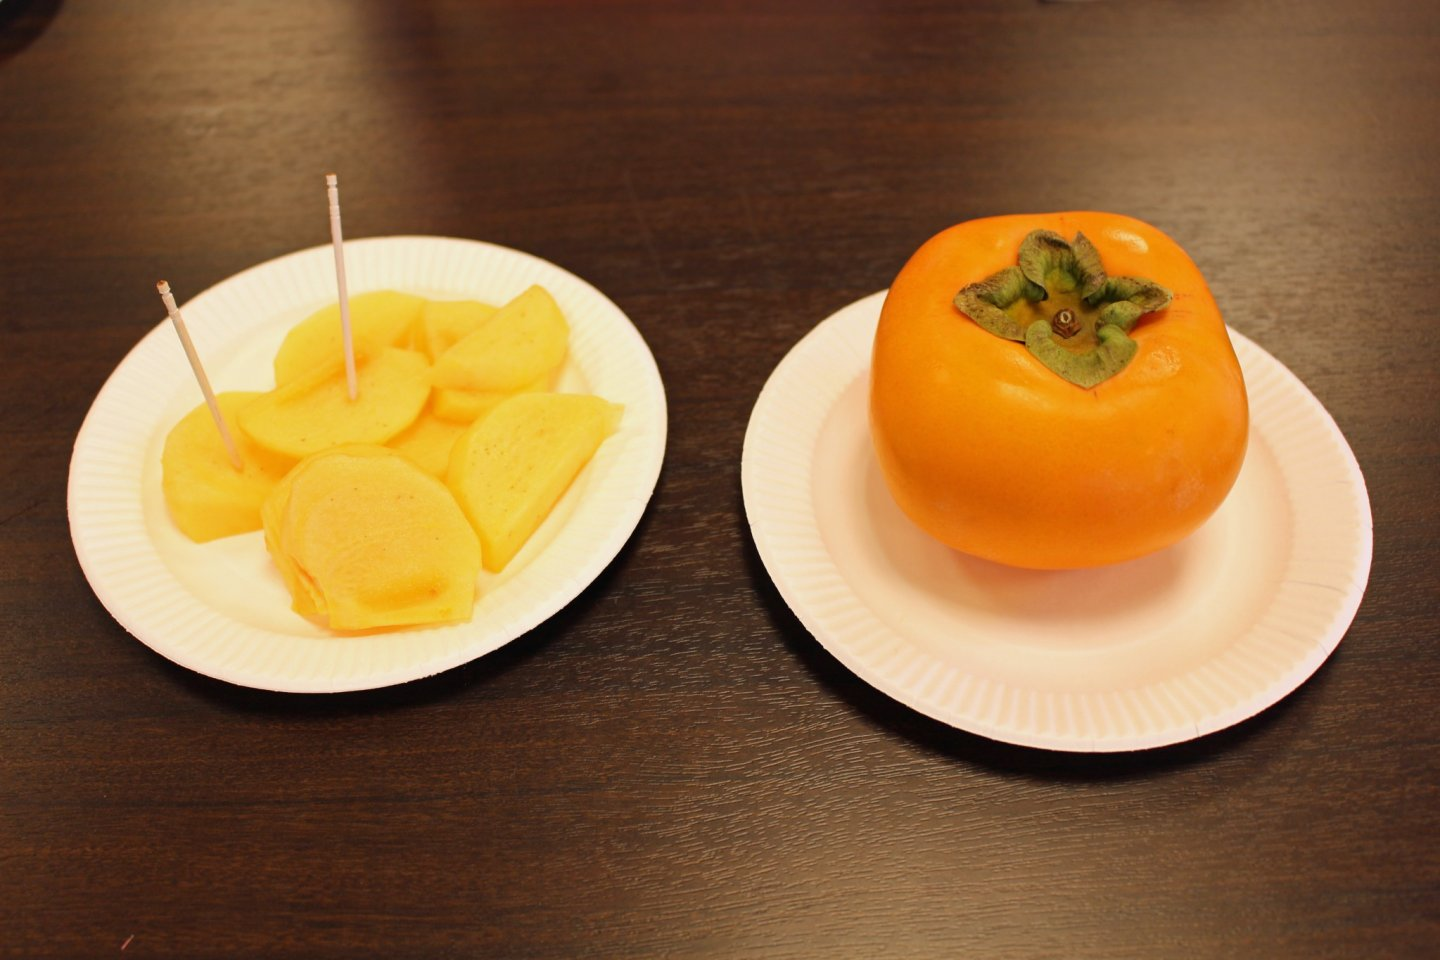 Sliced kaki (Japanese persimmon) next to the real thing. Despite its resemblance to an orange tomato, the kaki have a texture like an apple and taste like something between an apple and a pear.